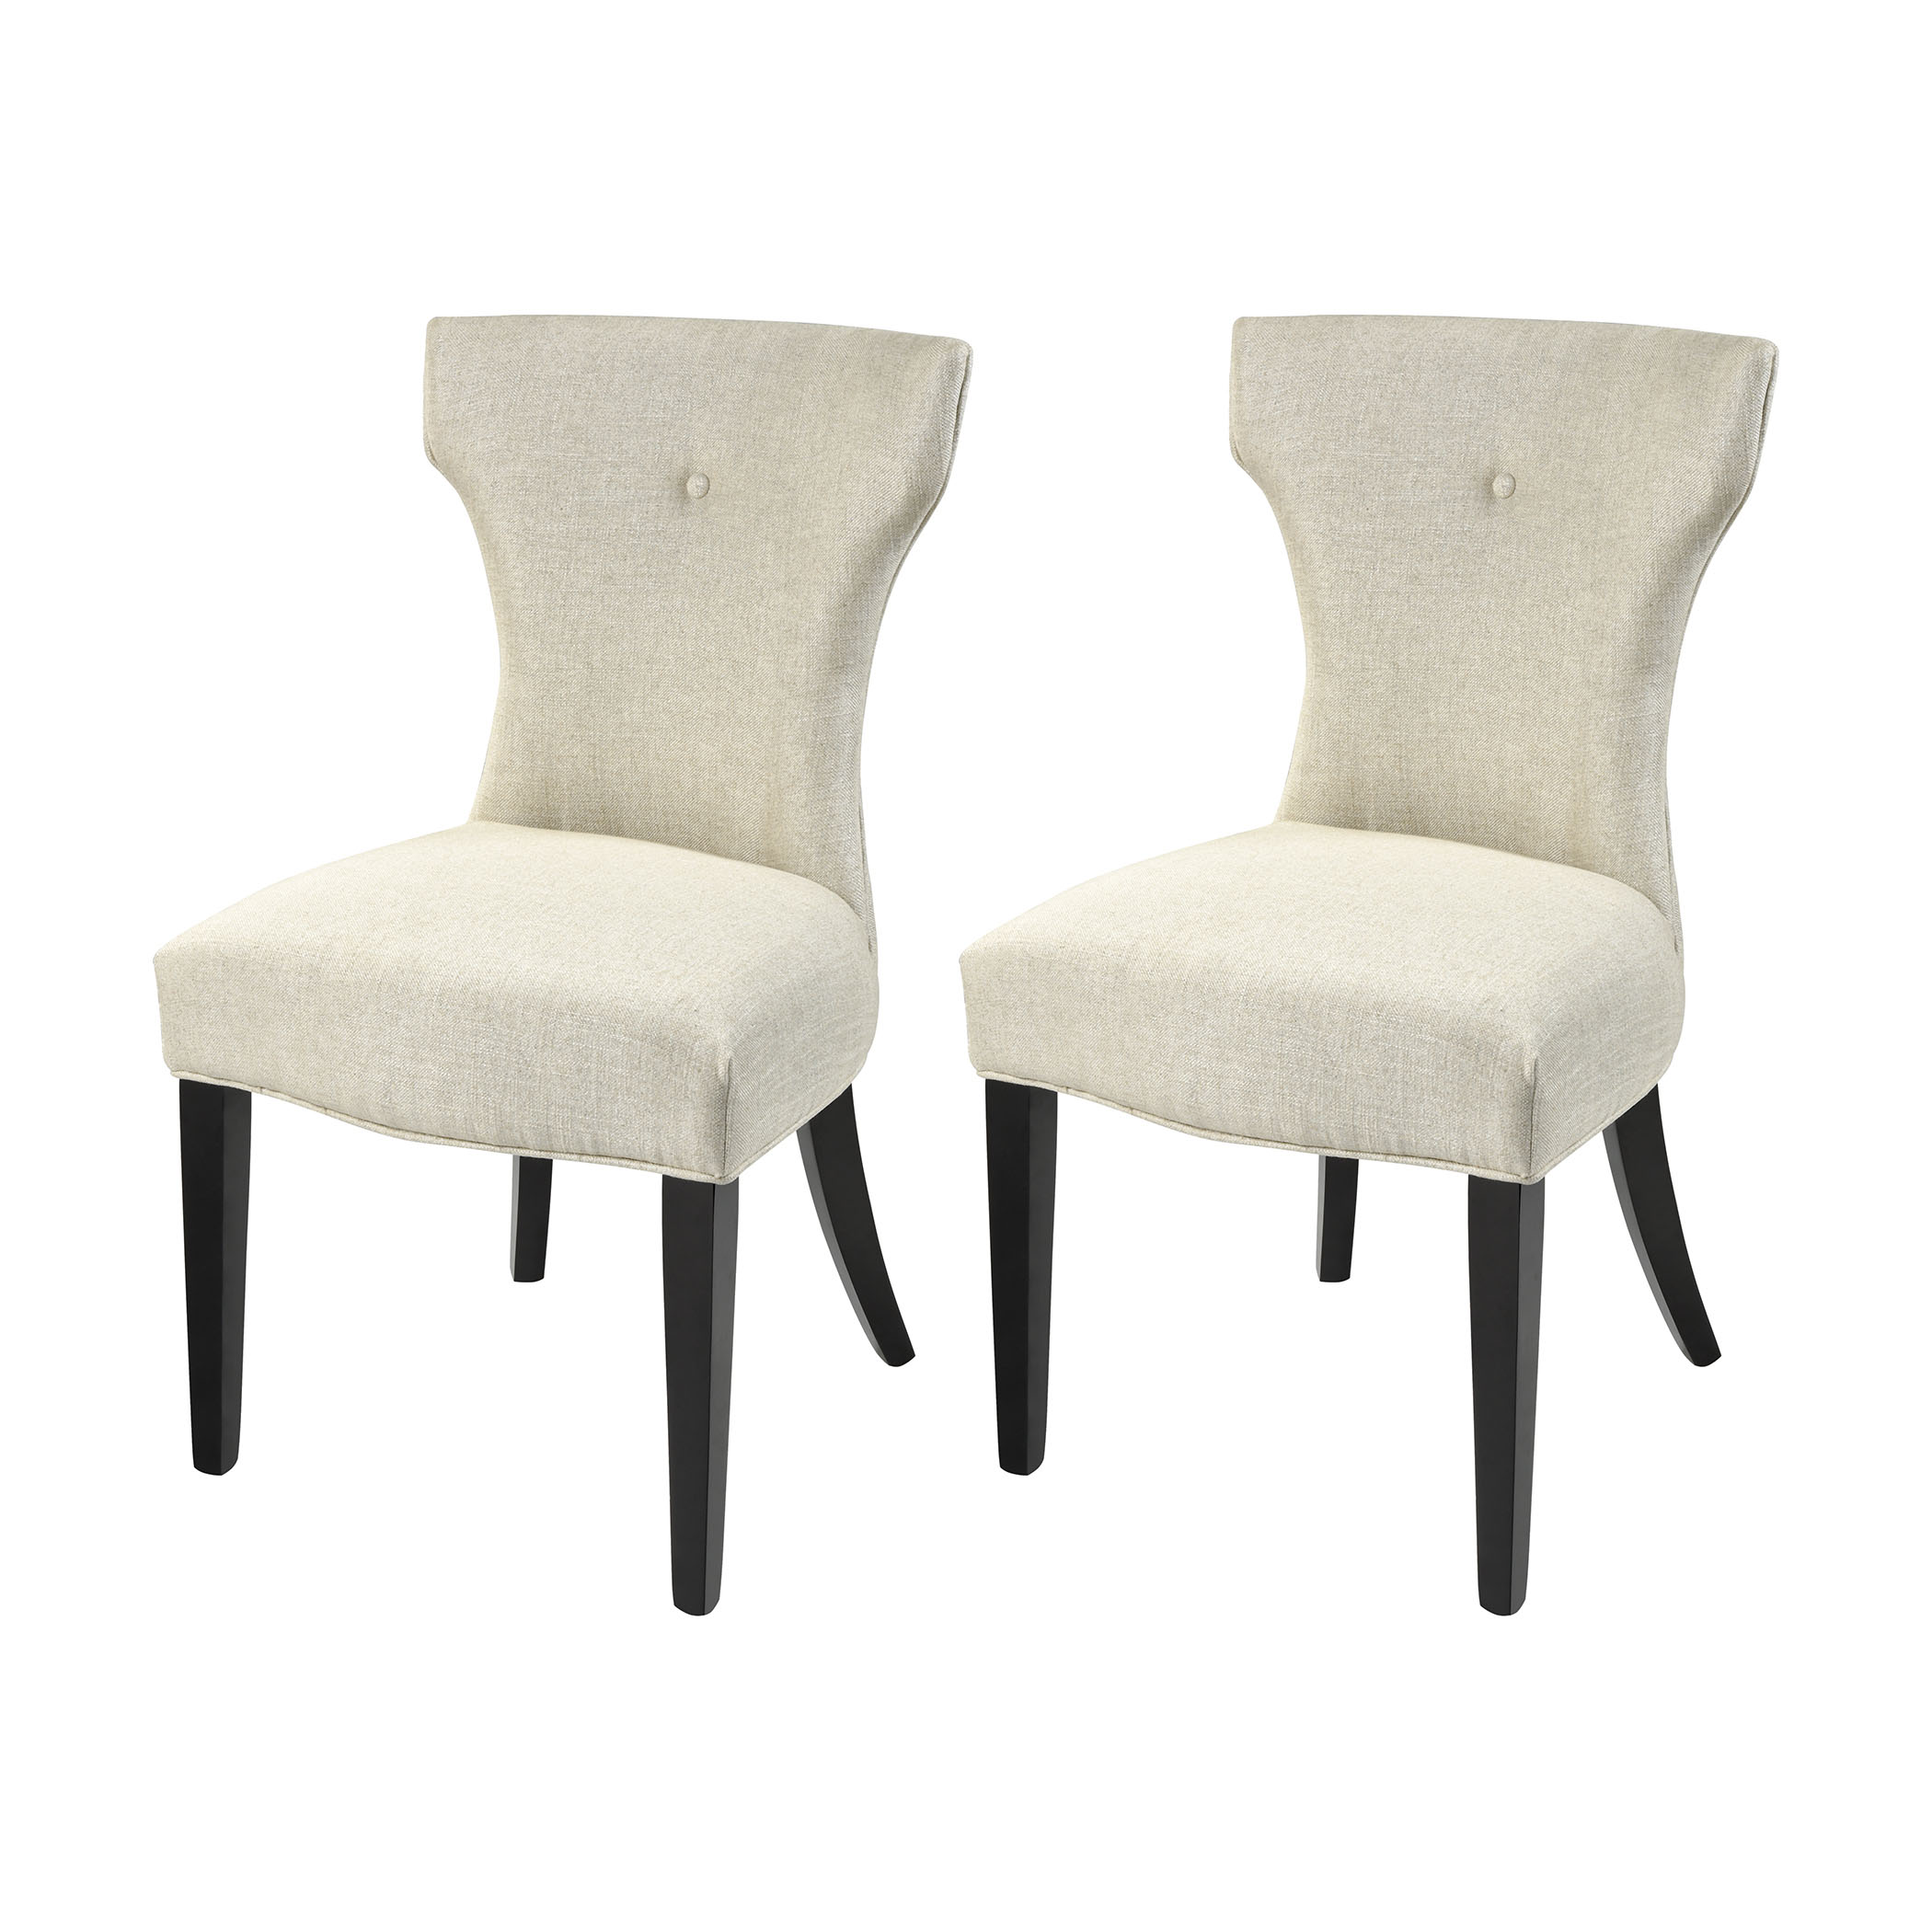 Abigail Dining Chairs in White Set of 2 Steinworld | Elk Home